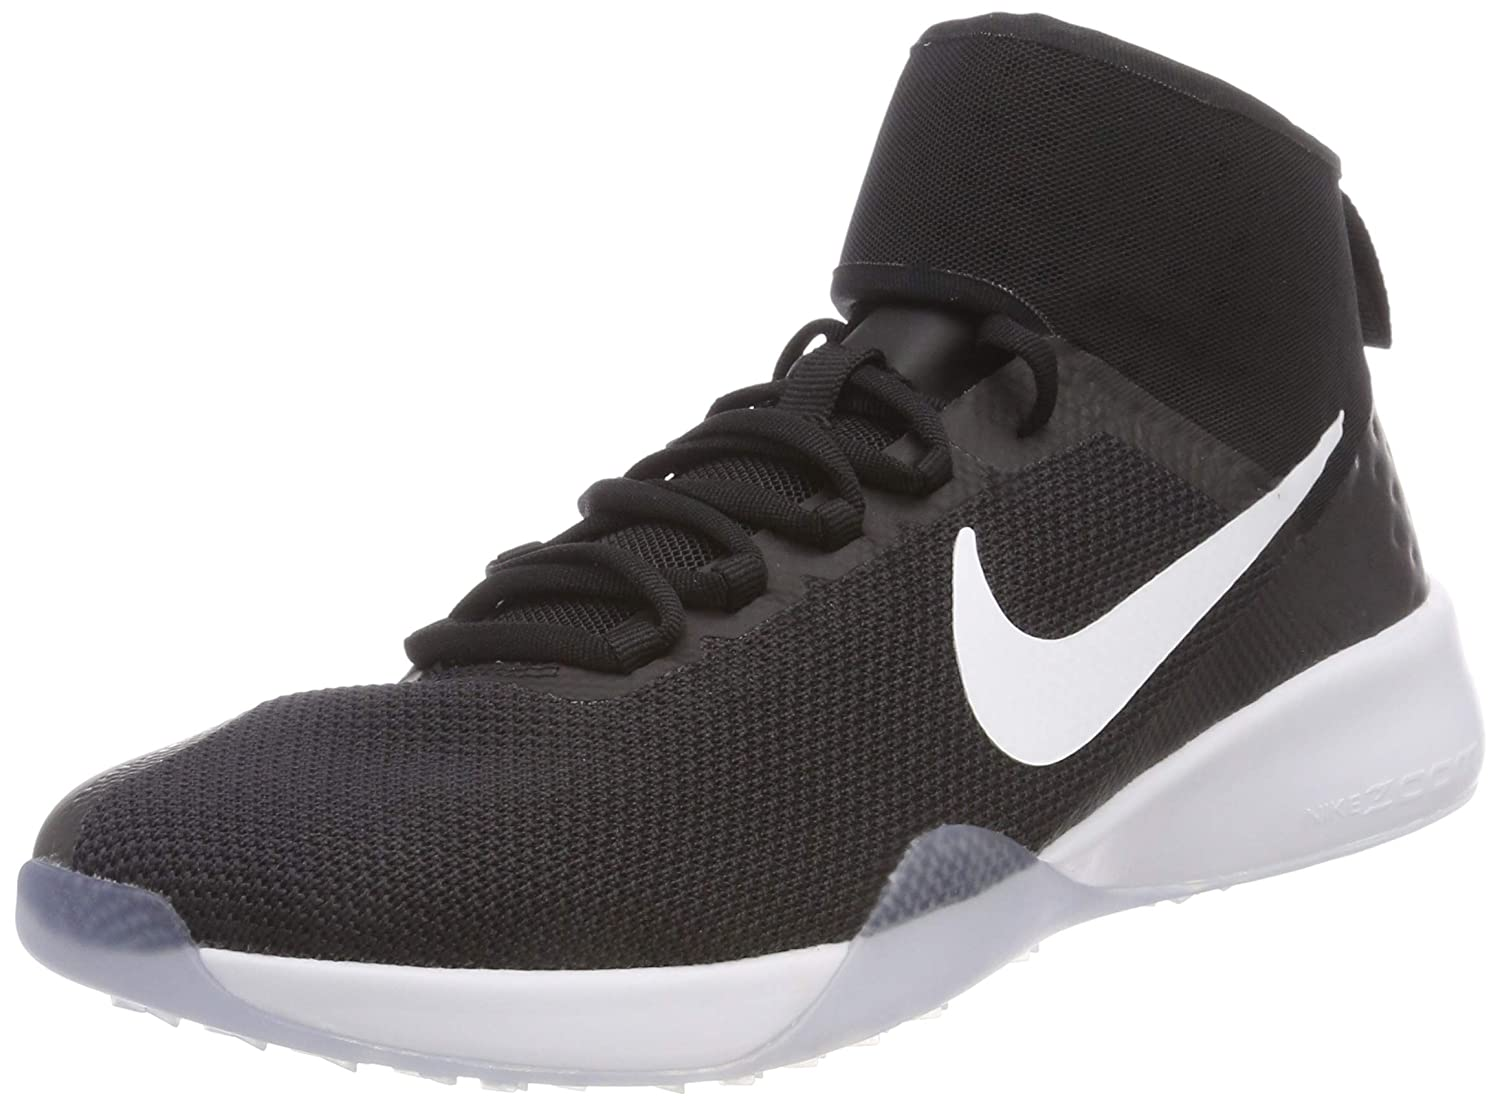 Nike WMNS - Air Zoom Strong 2 - WMNS schwarz Weiß 3d0fb7